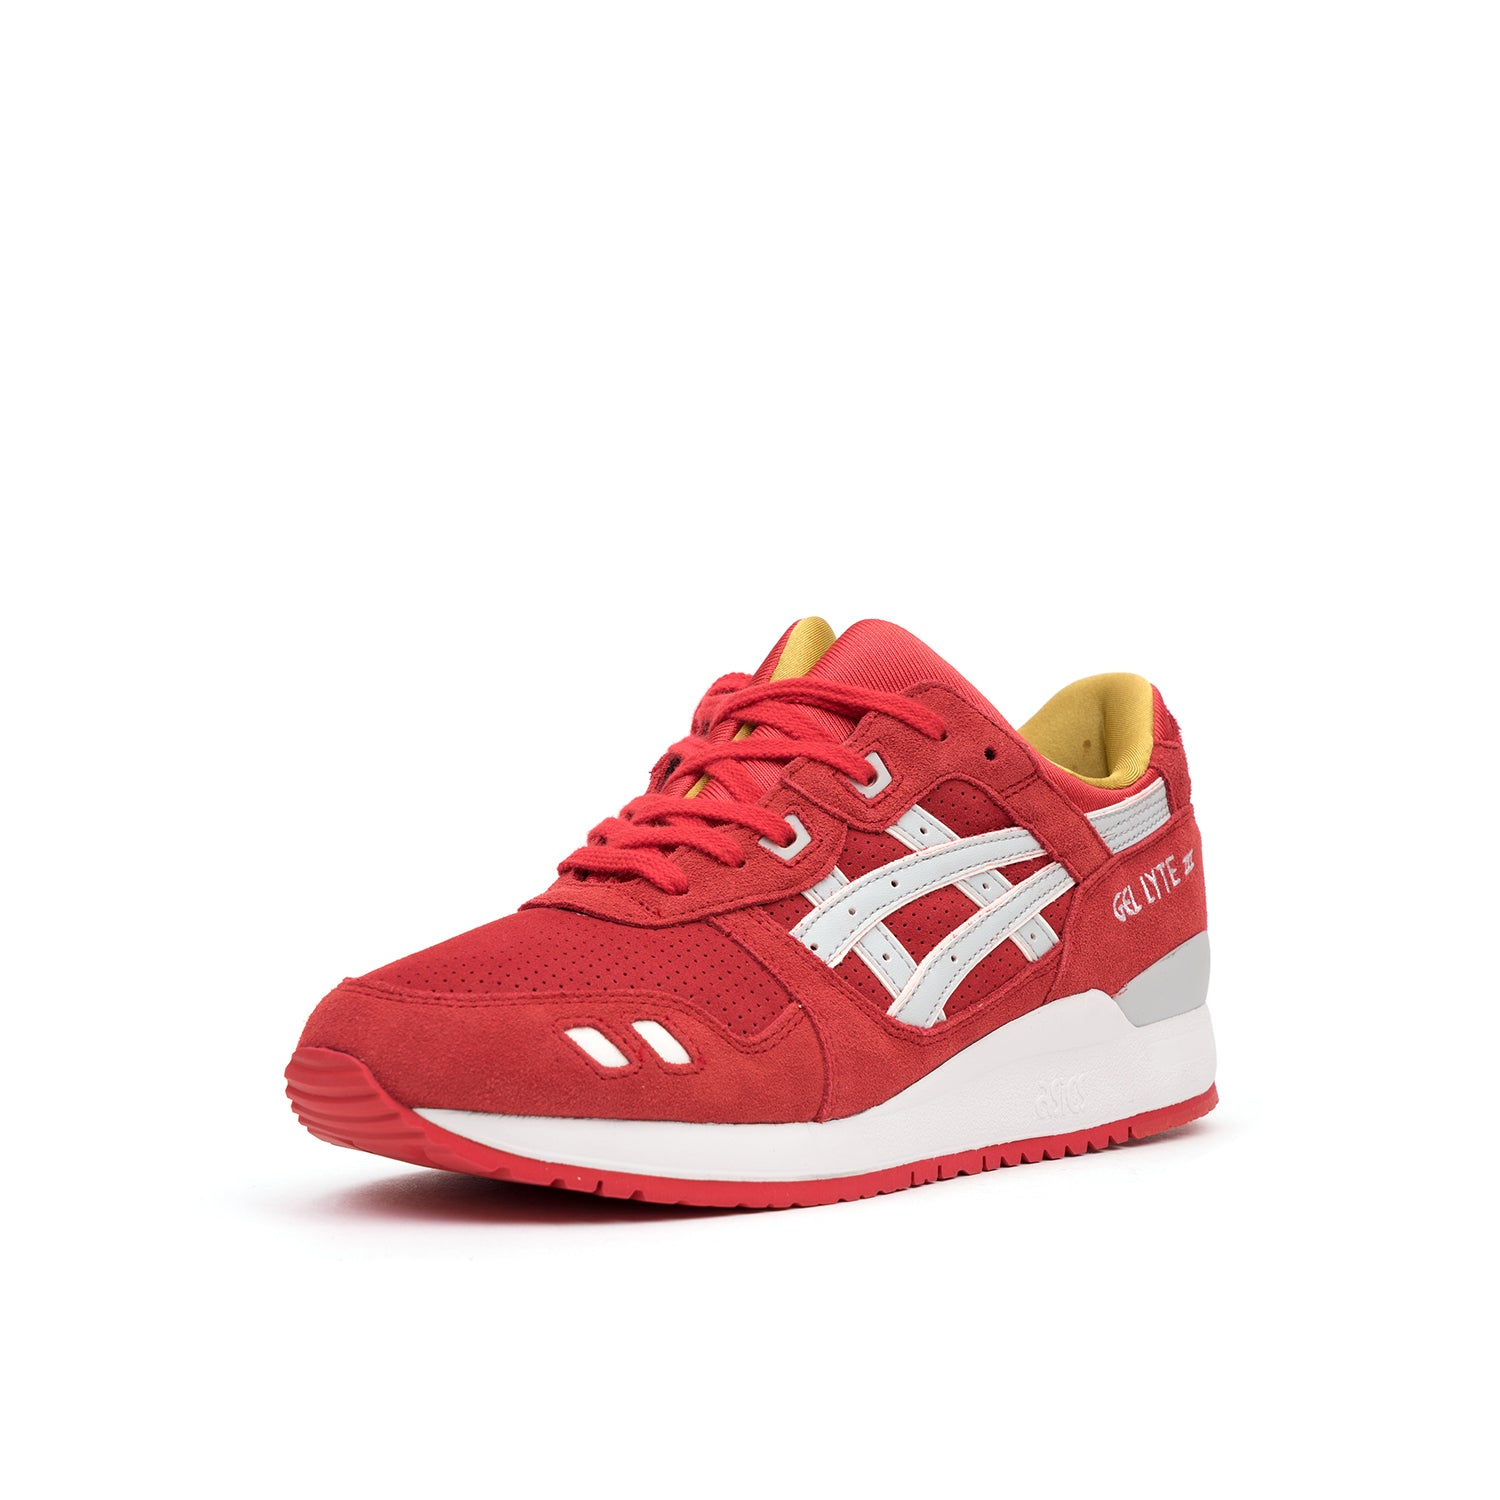 official photos ed32e dcdb9 Asics Gel Lyte III 'Santa Claus' Christmas Pack Fiery Red